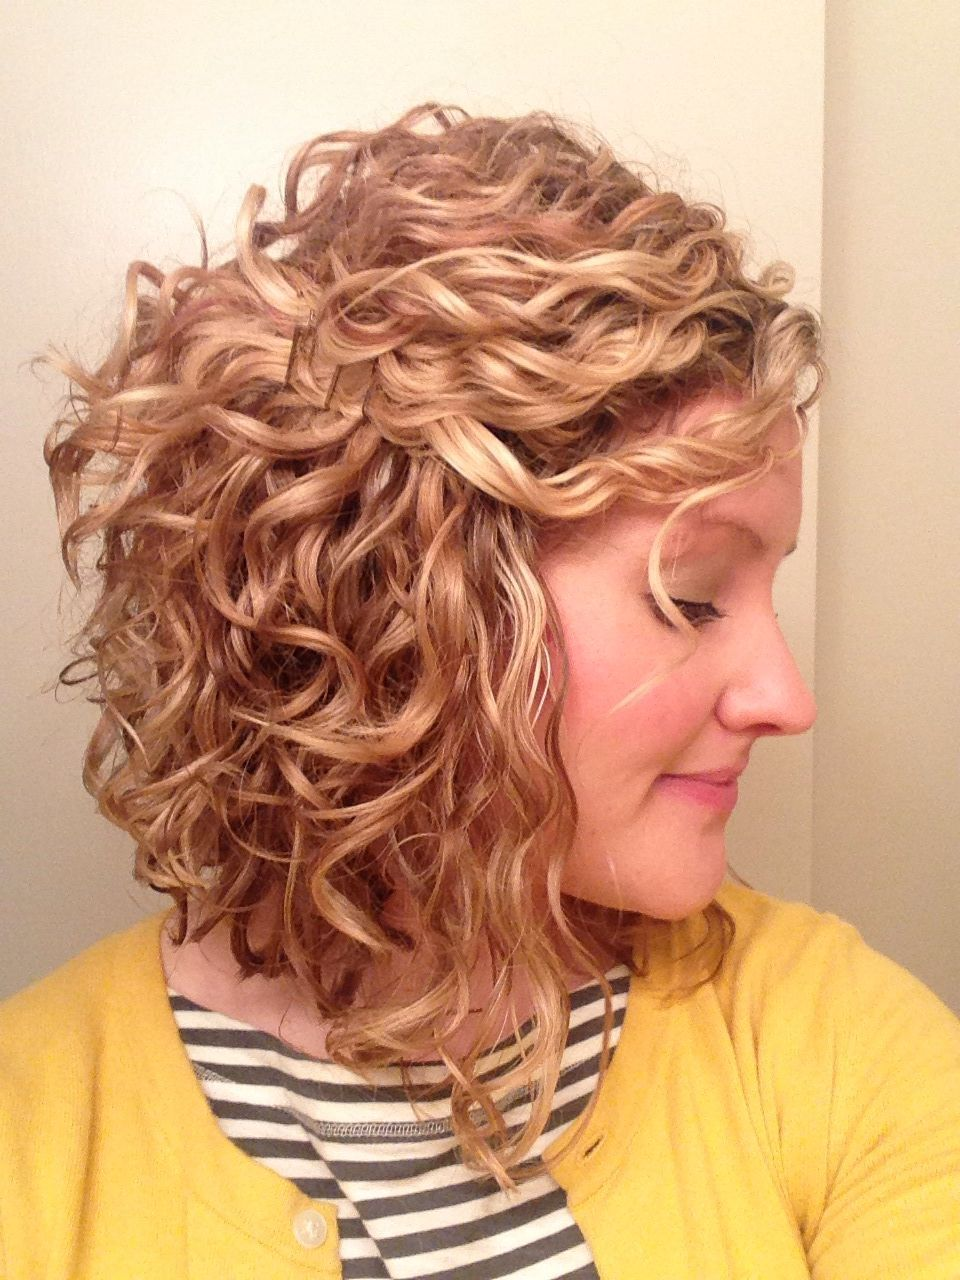 How To Get Beautiful Natural Curly Hair Beauty Stuffs Pinterest